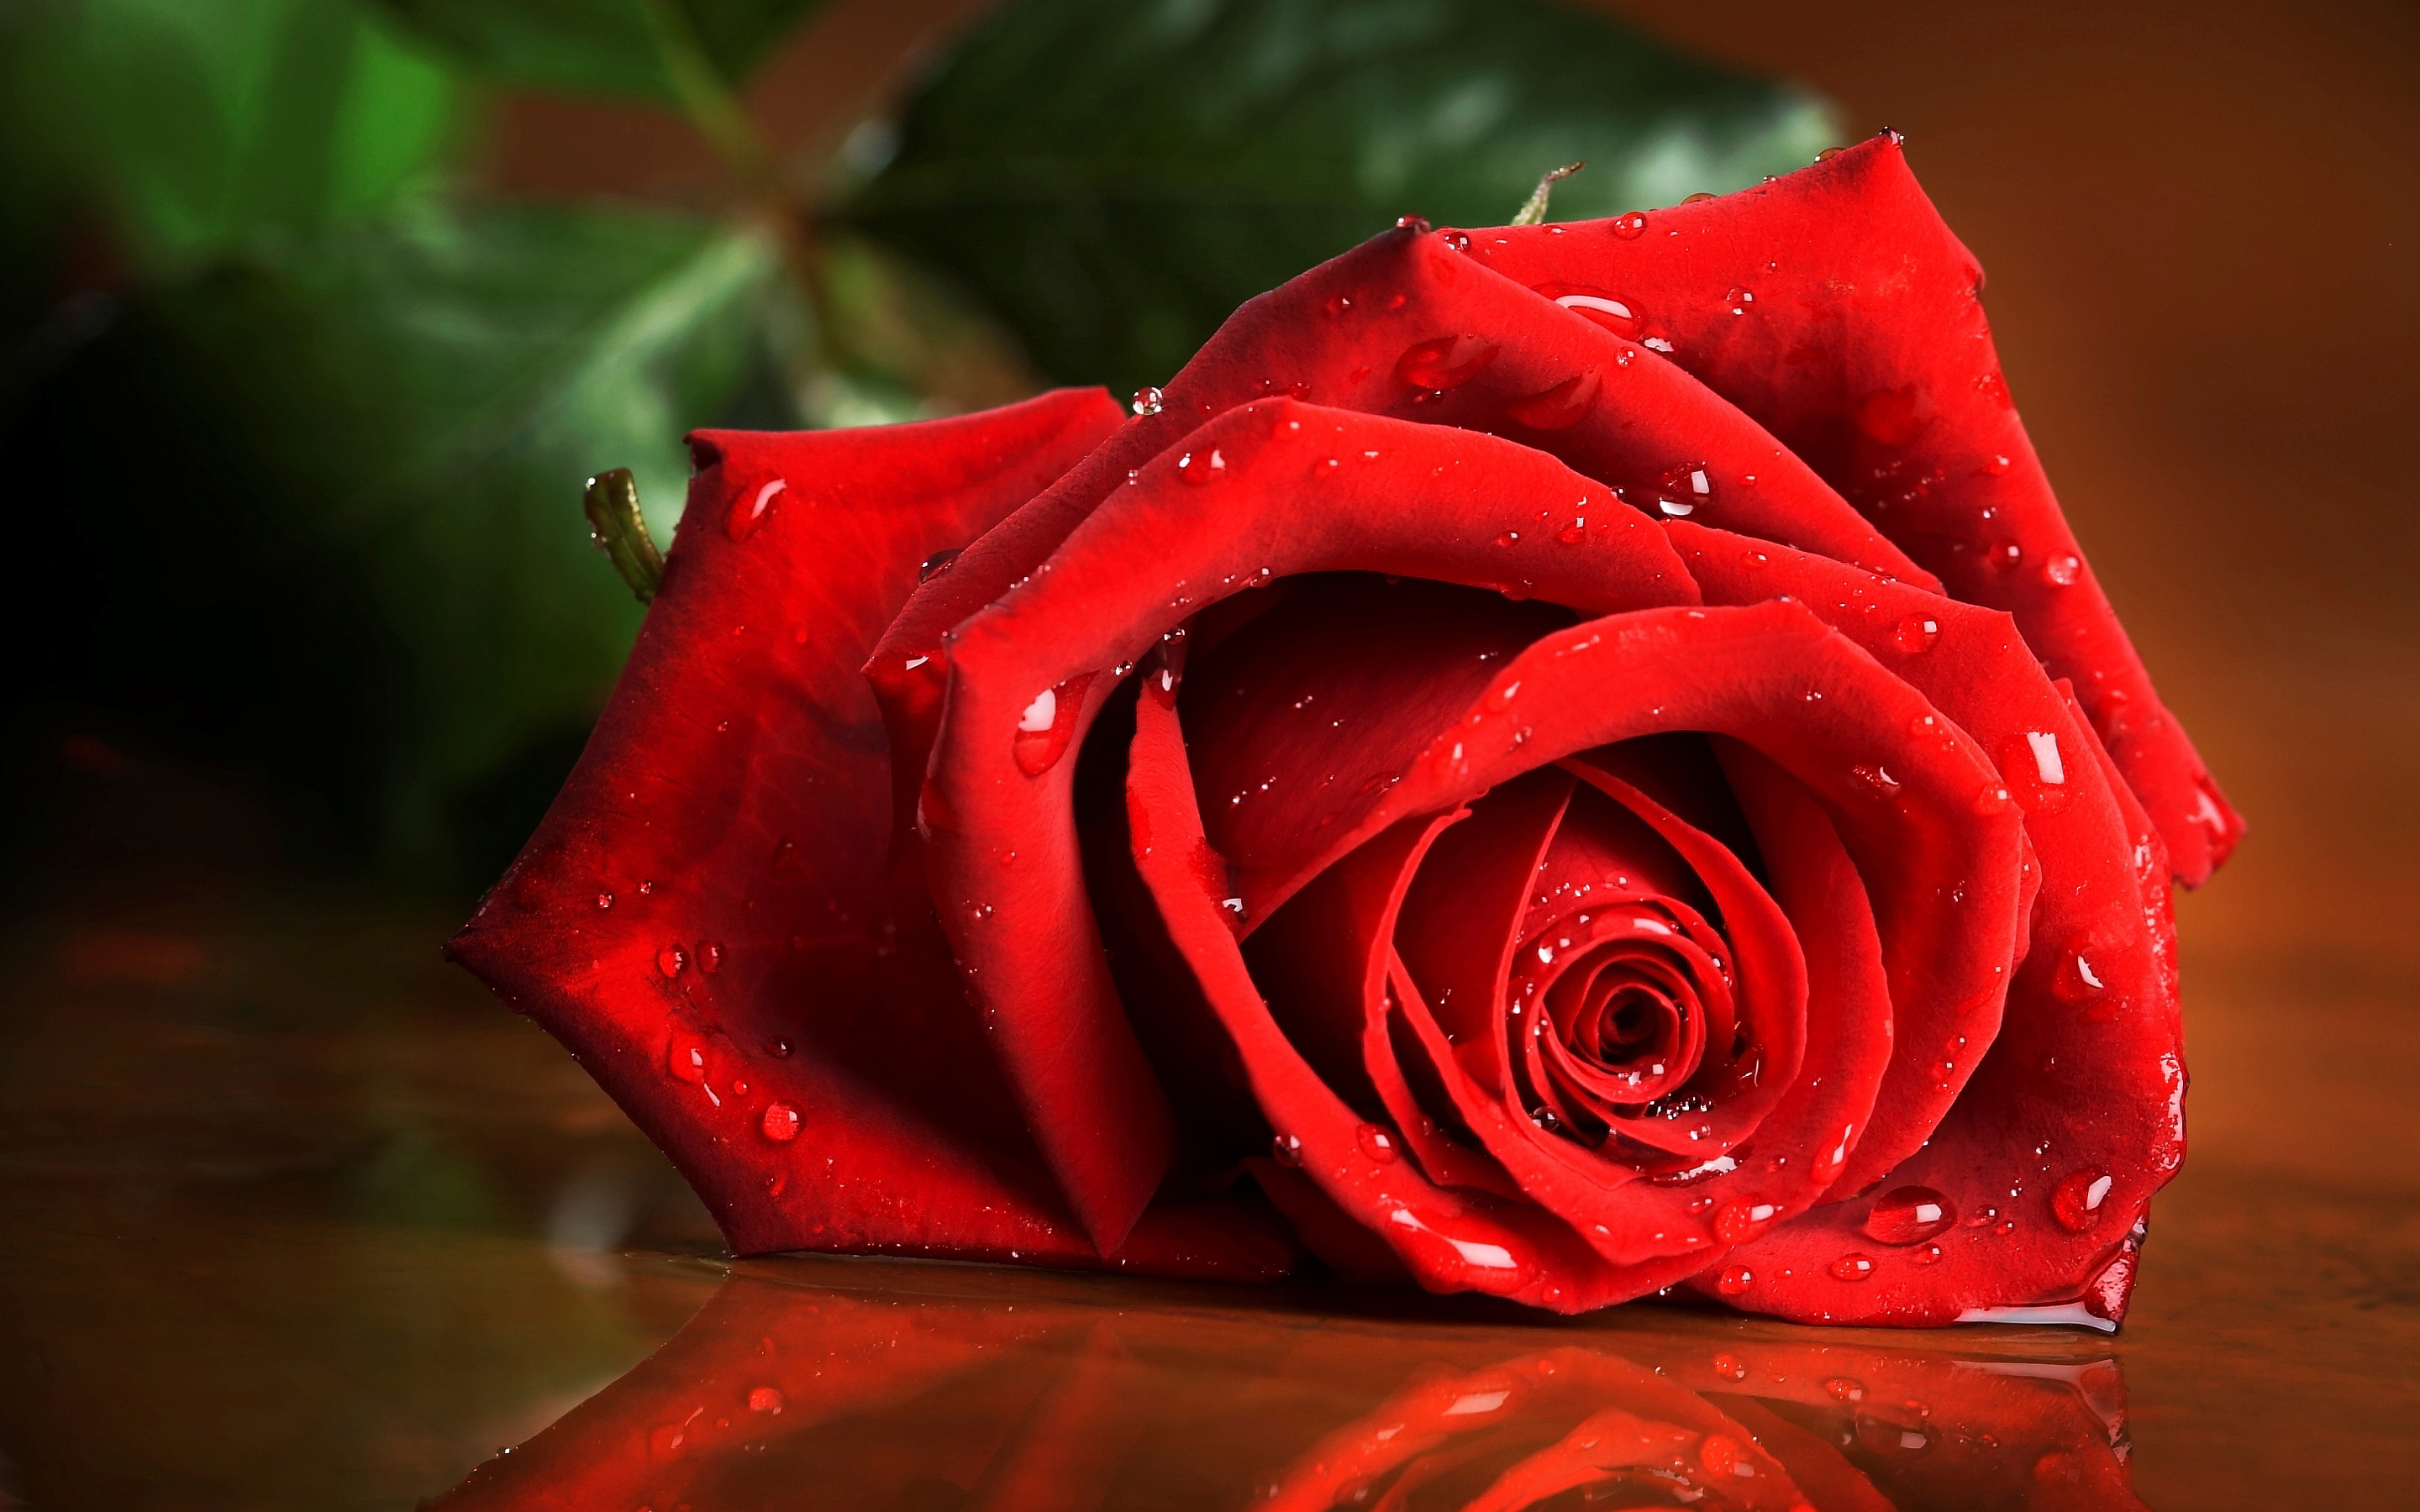 Wet rose hd Wallpapers Pictures Photos Images. «